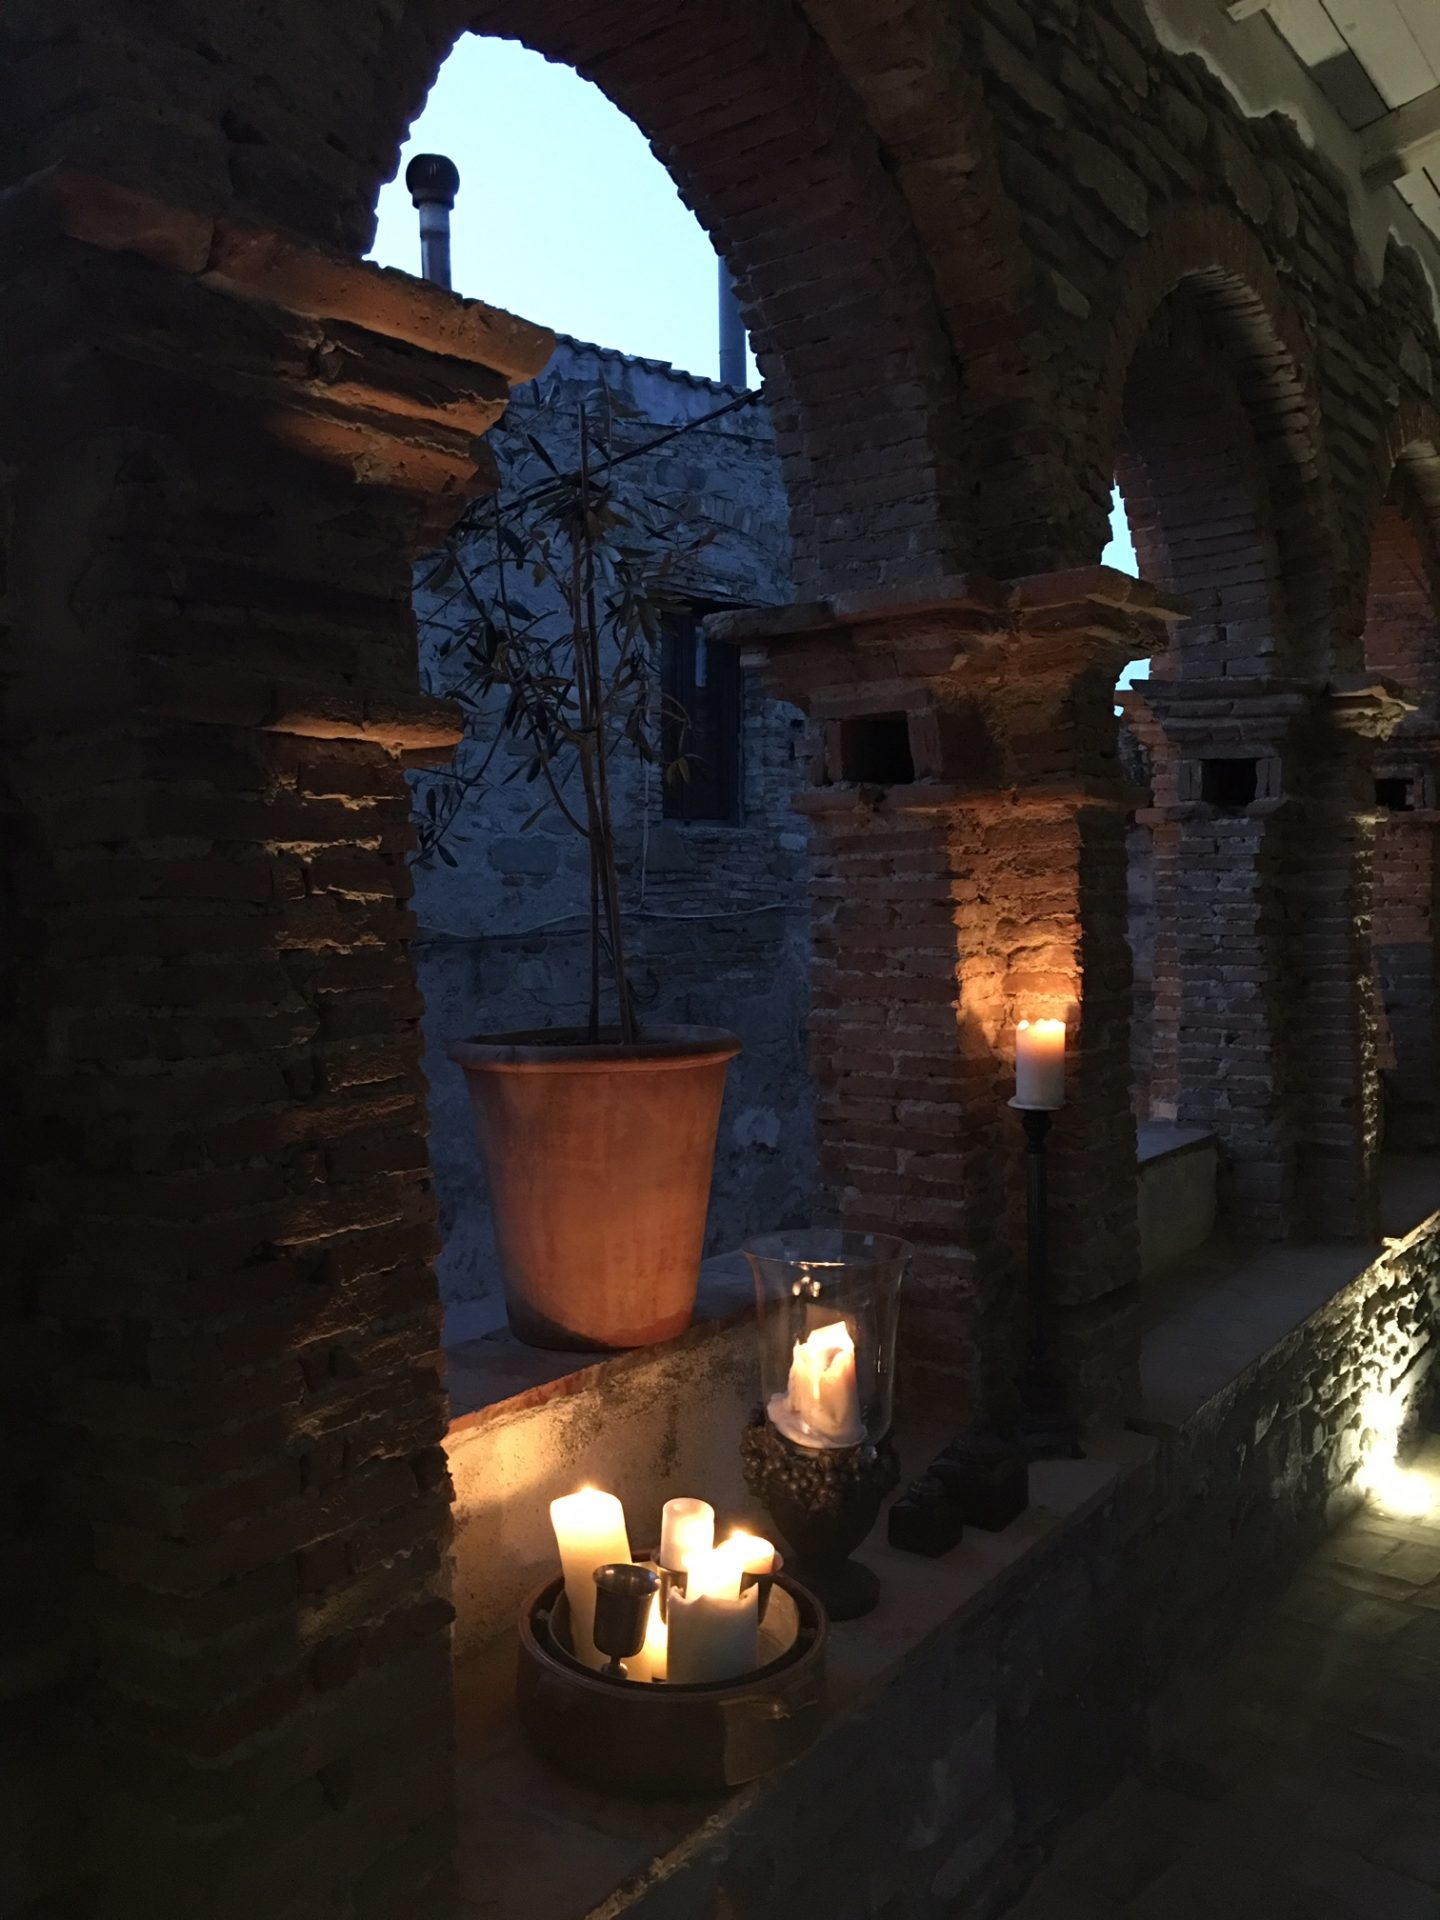 candlelit archways at night at the Mandarin, Orangery Retreat, La Rabatana